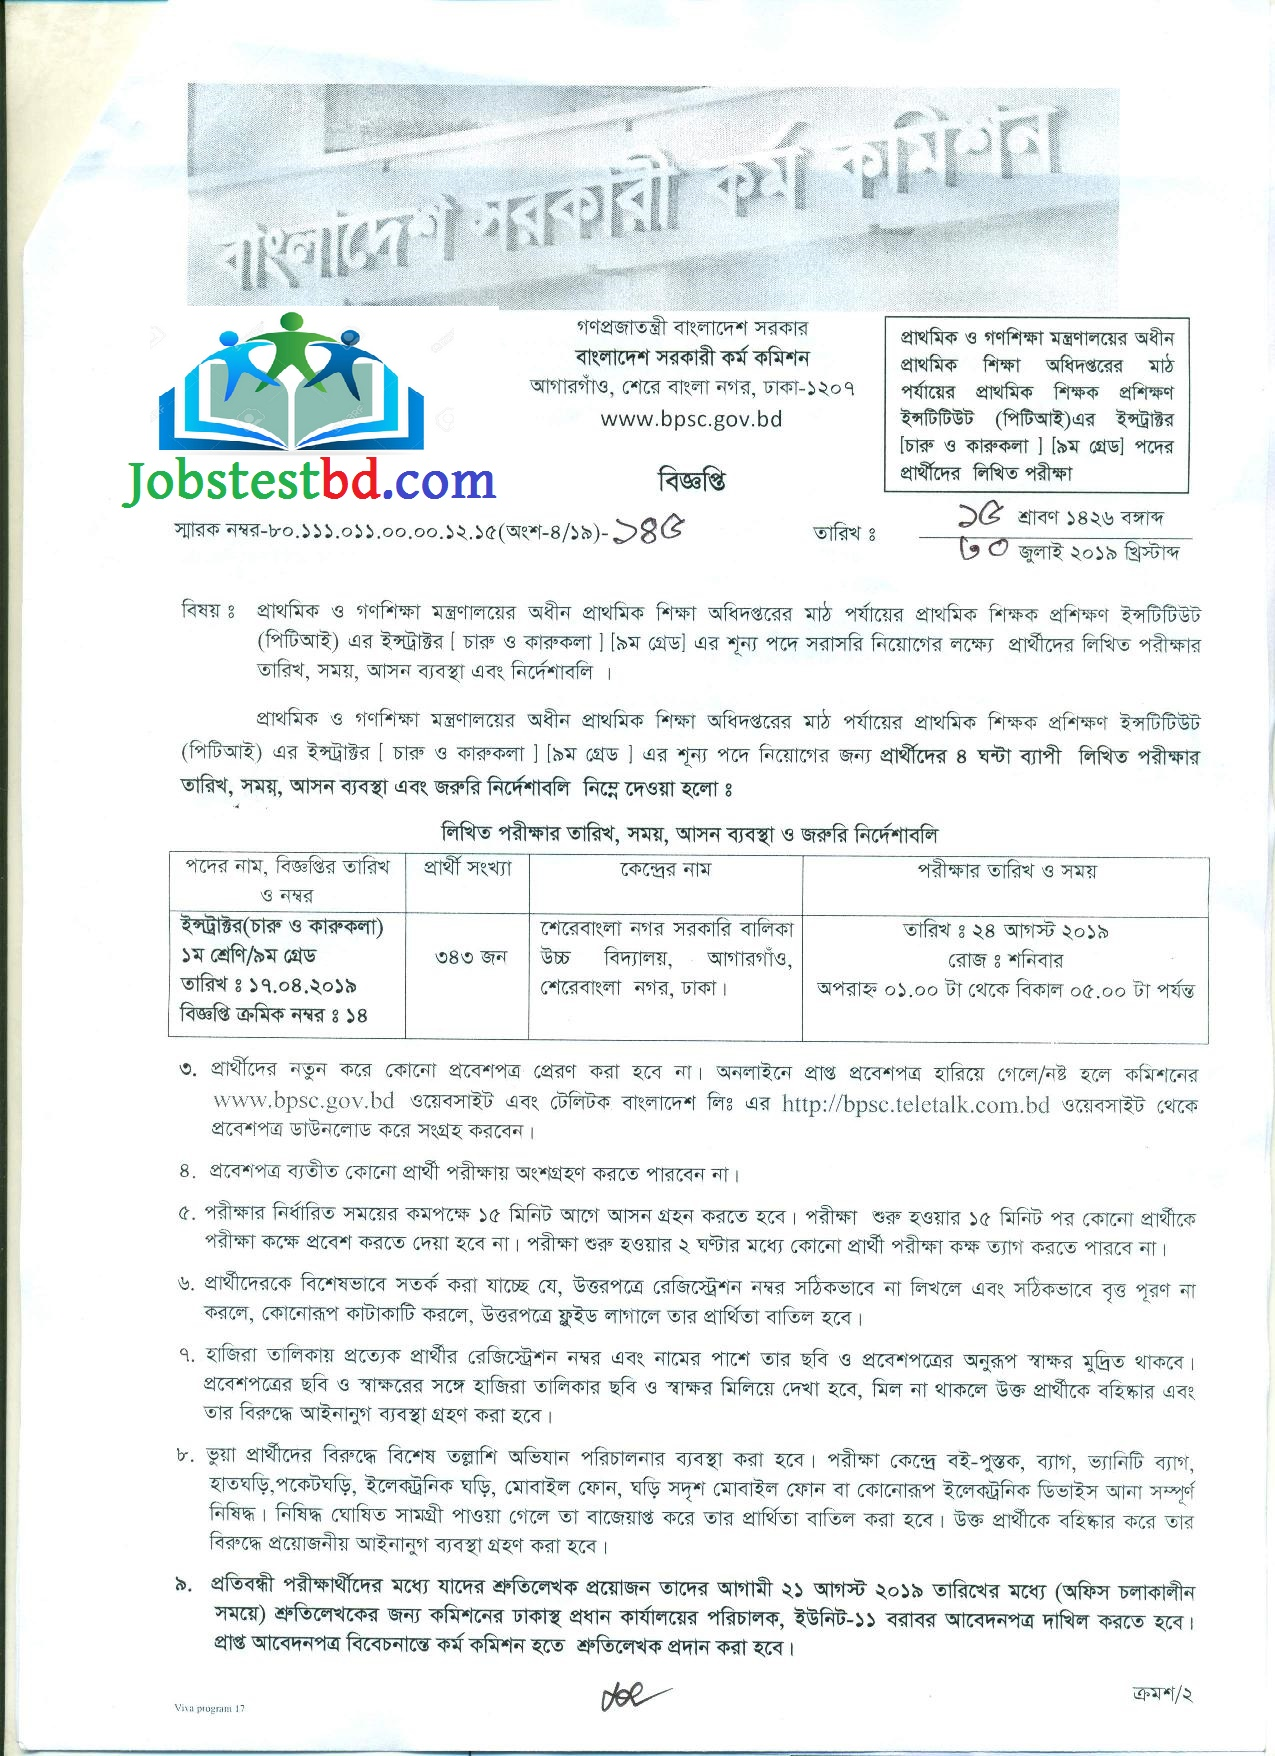 DPE Exam Date And Admit Download - Jobs Test bd